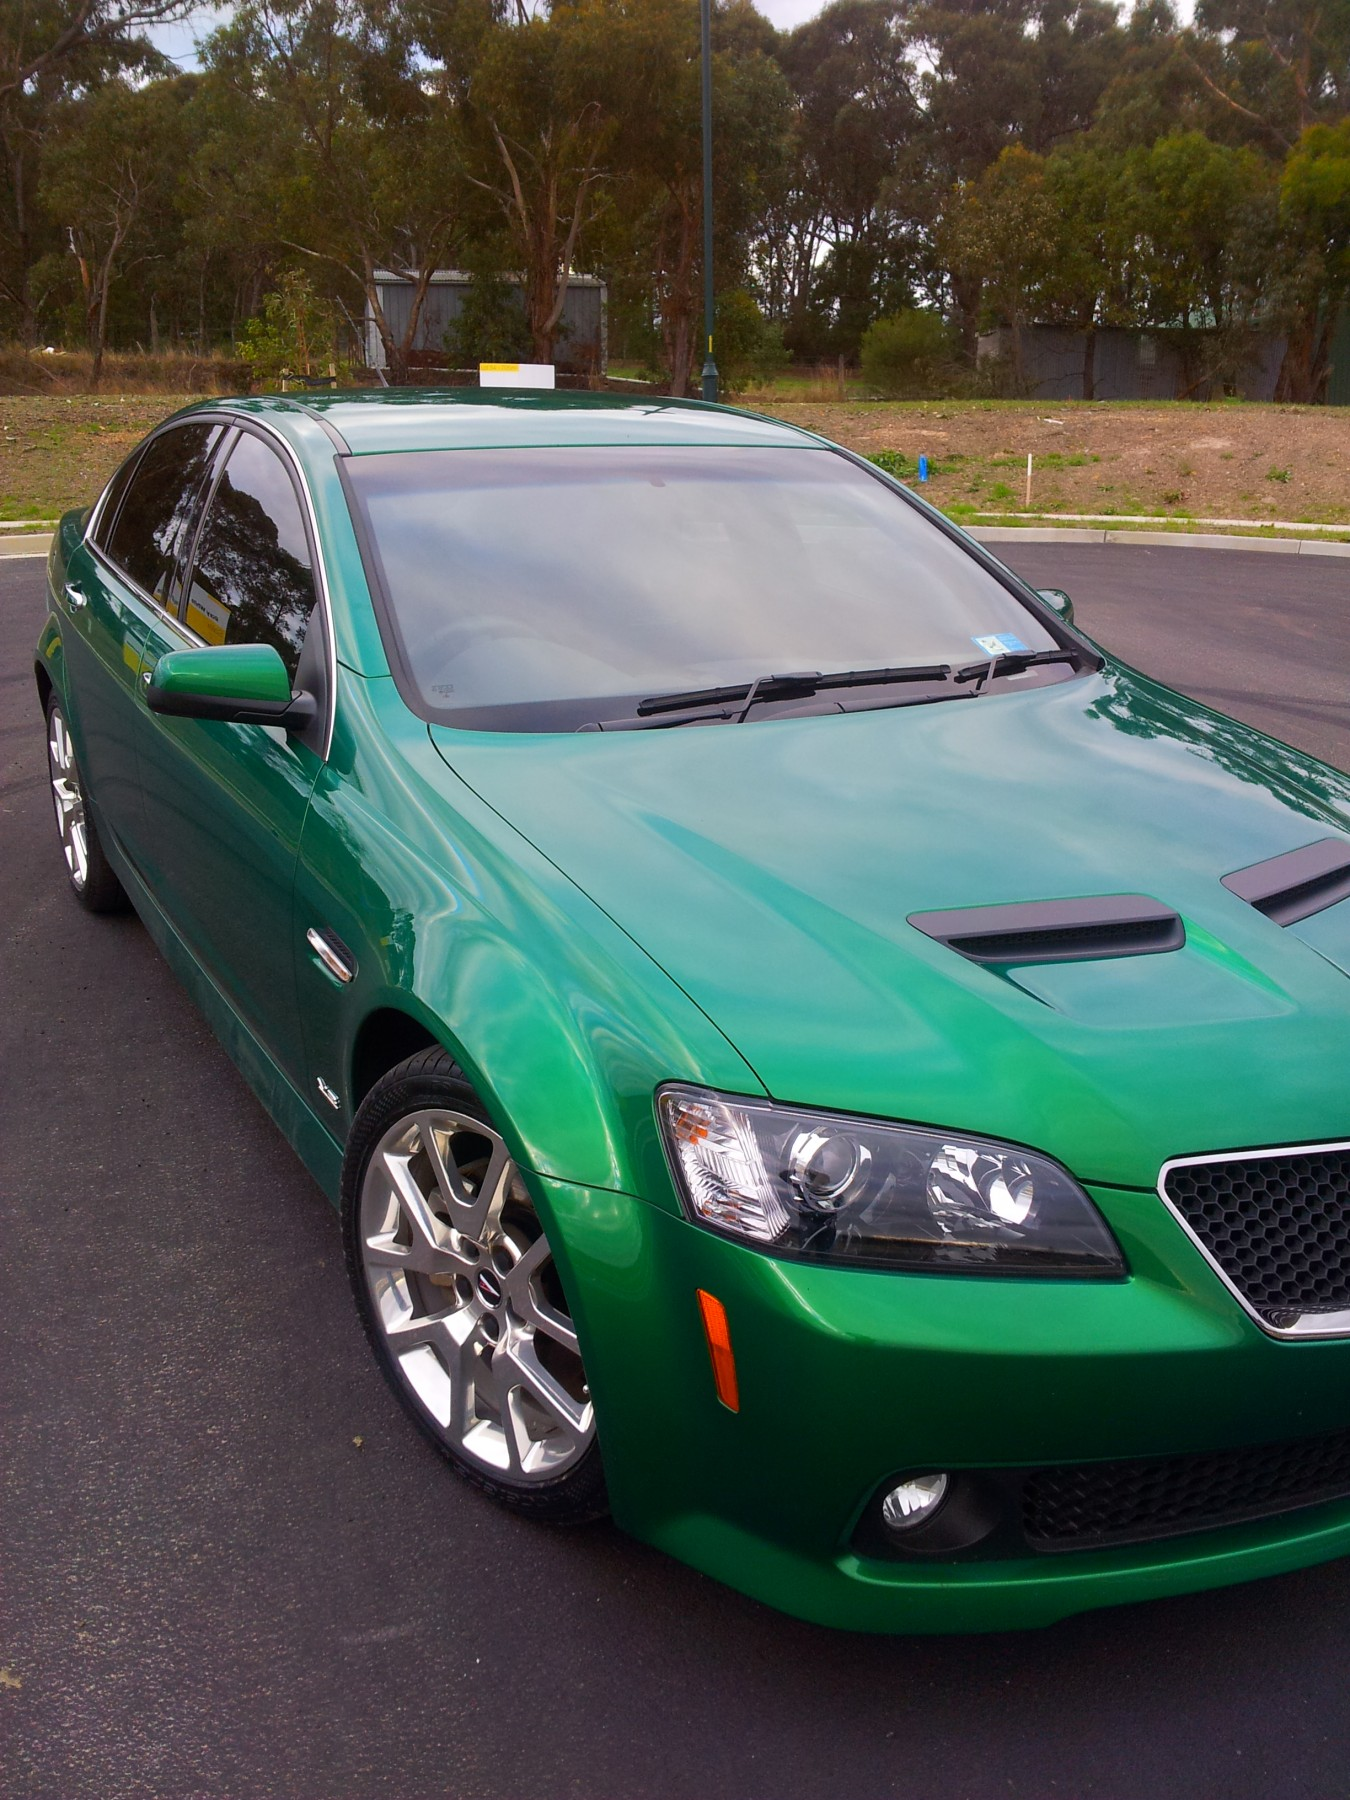 2010 Holden Commodore SS V-Series Special Edition - hazpop - Shannons Club